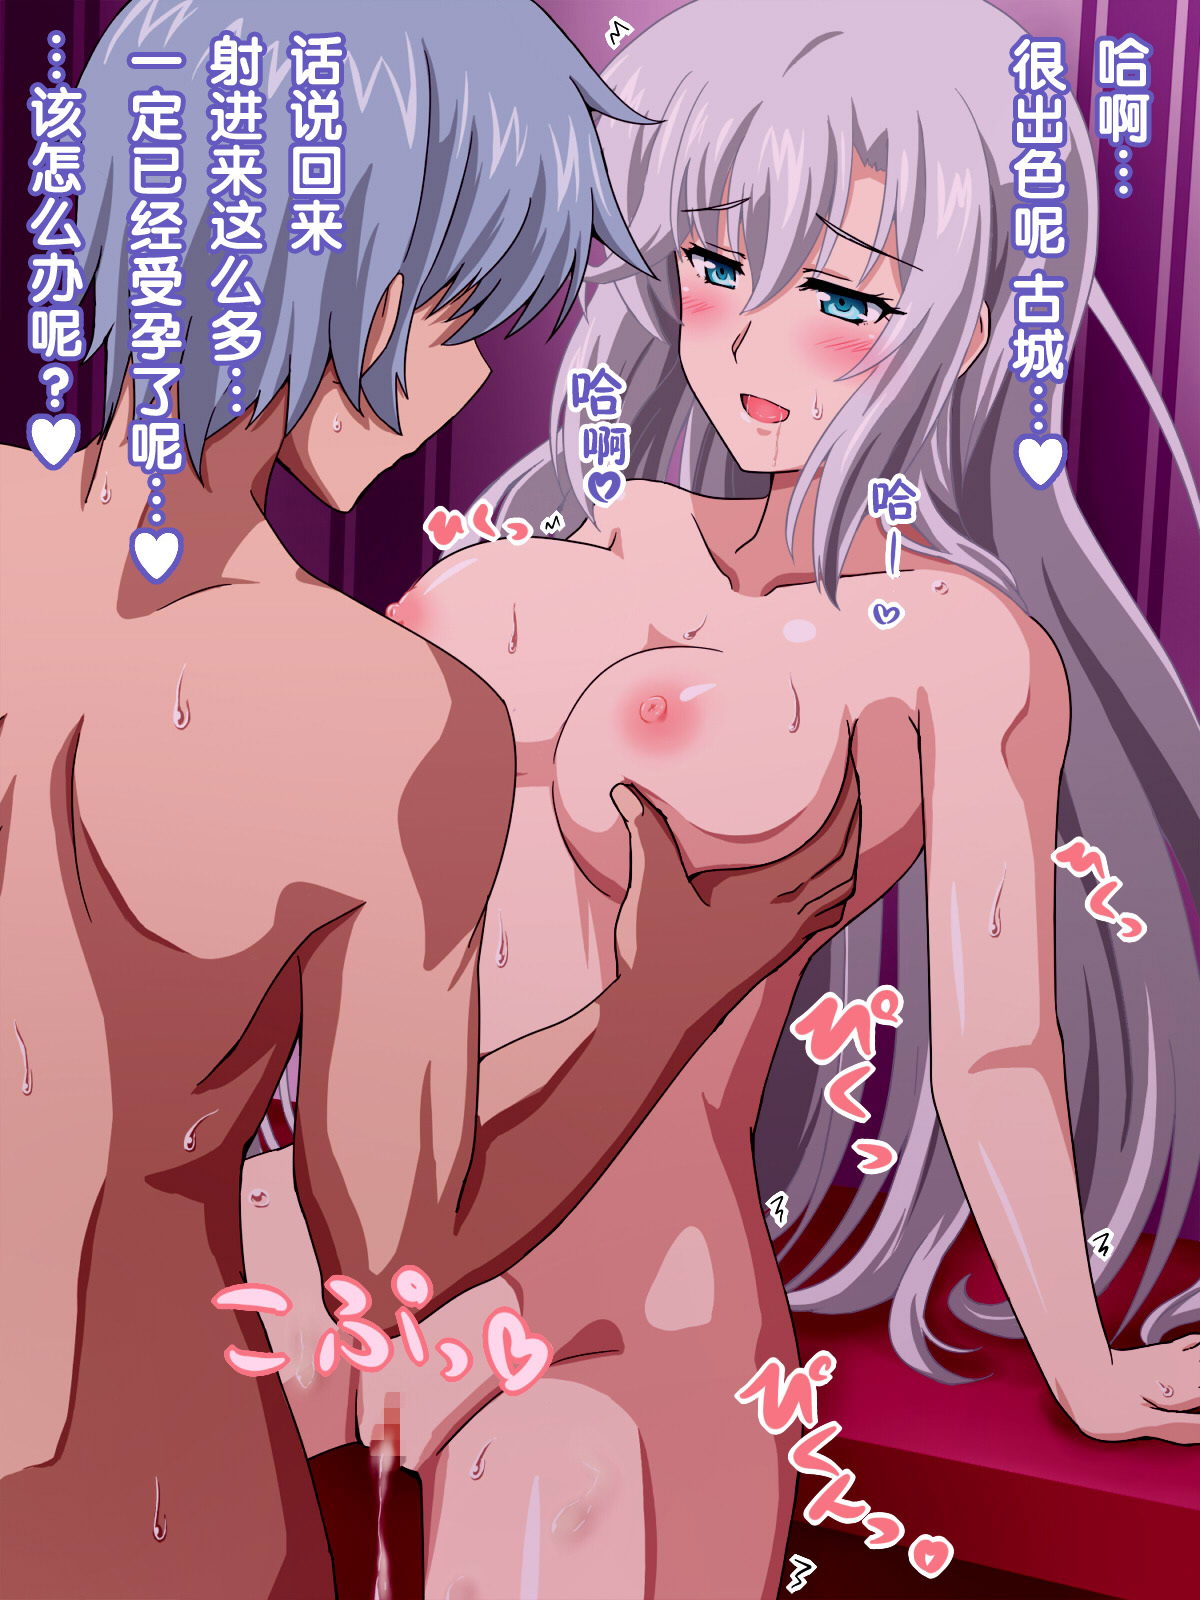 Pic anime sex and blood hentai gallery